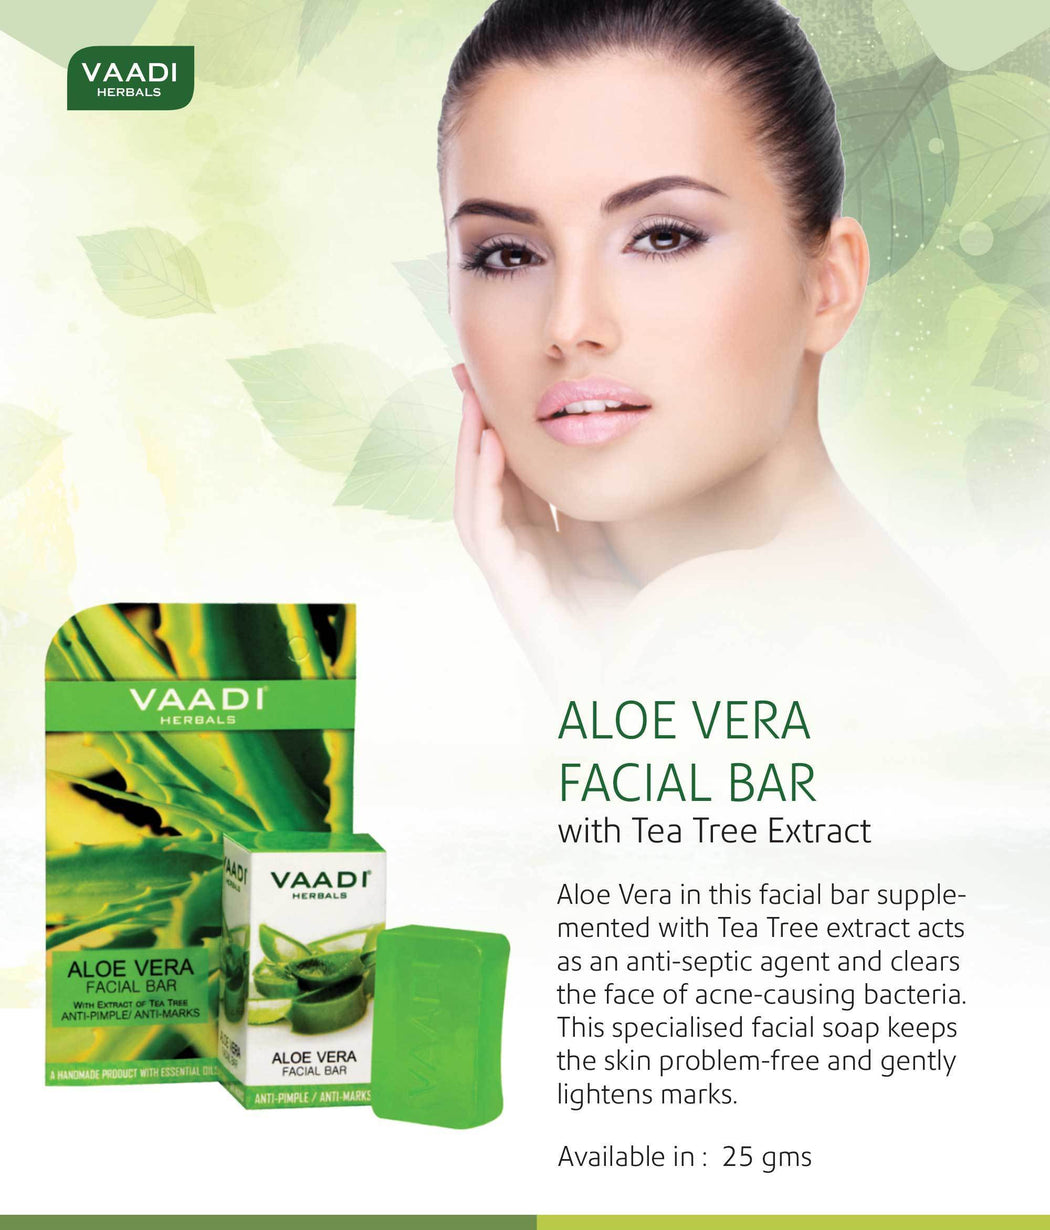 Organic Aloe Vera Facial Bar with Tea Tree and Honey - Reduces Acne - Keeps Skin Infection Free (4 x 25 gms/0.9 oz)